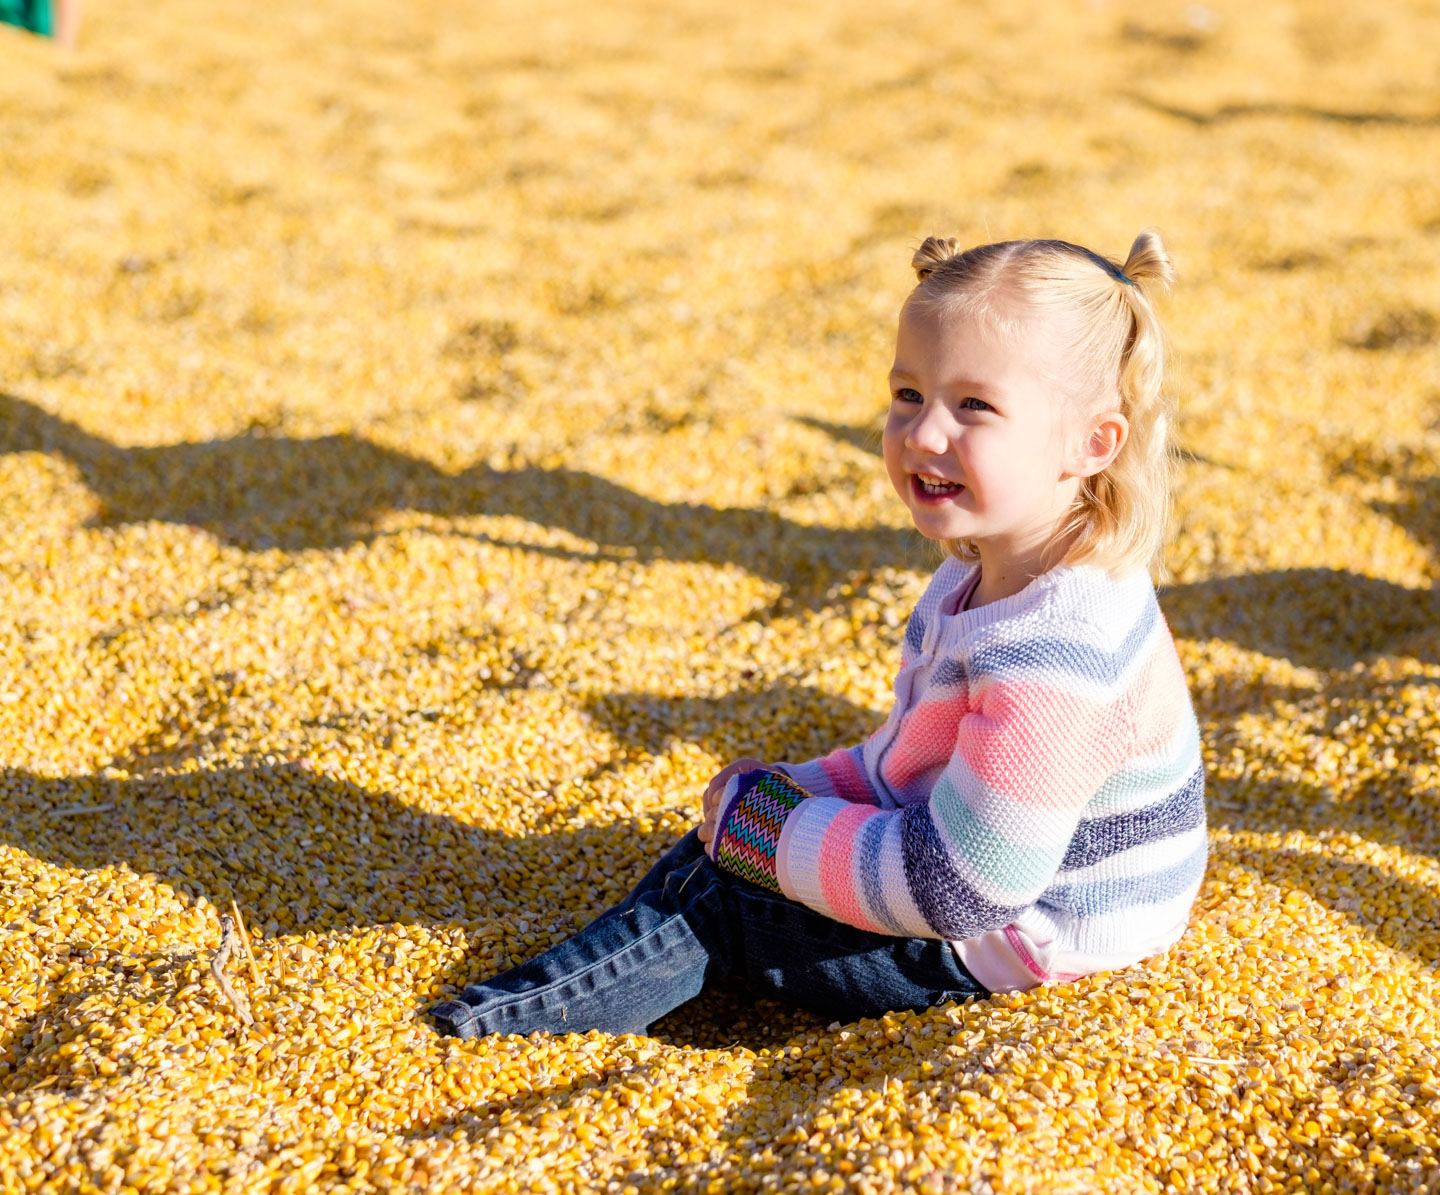 Playing in the corn